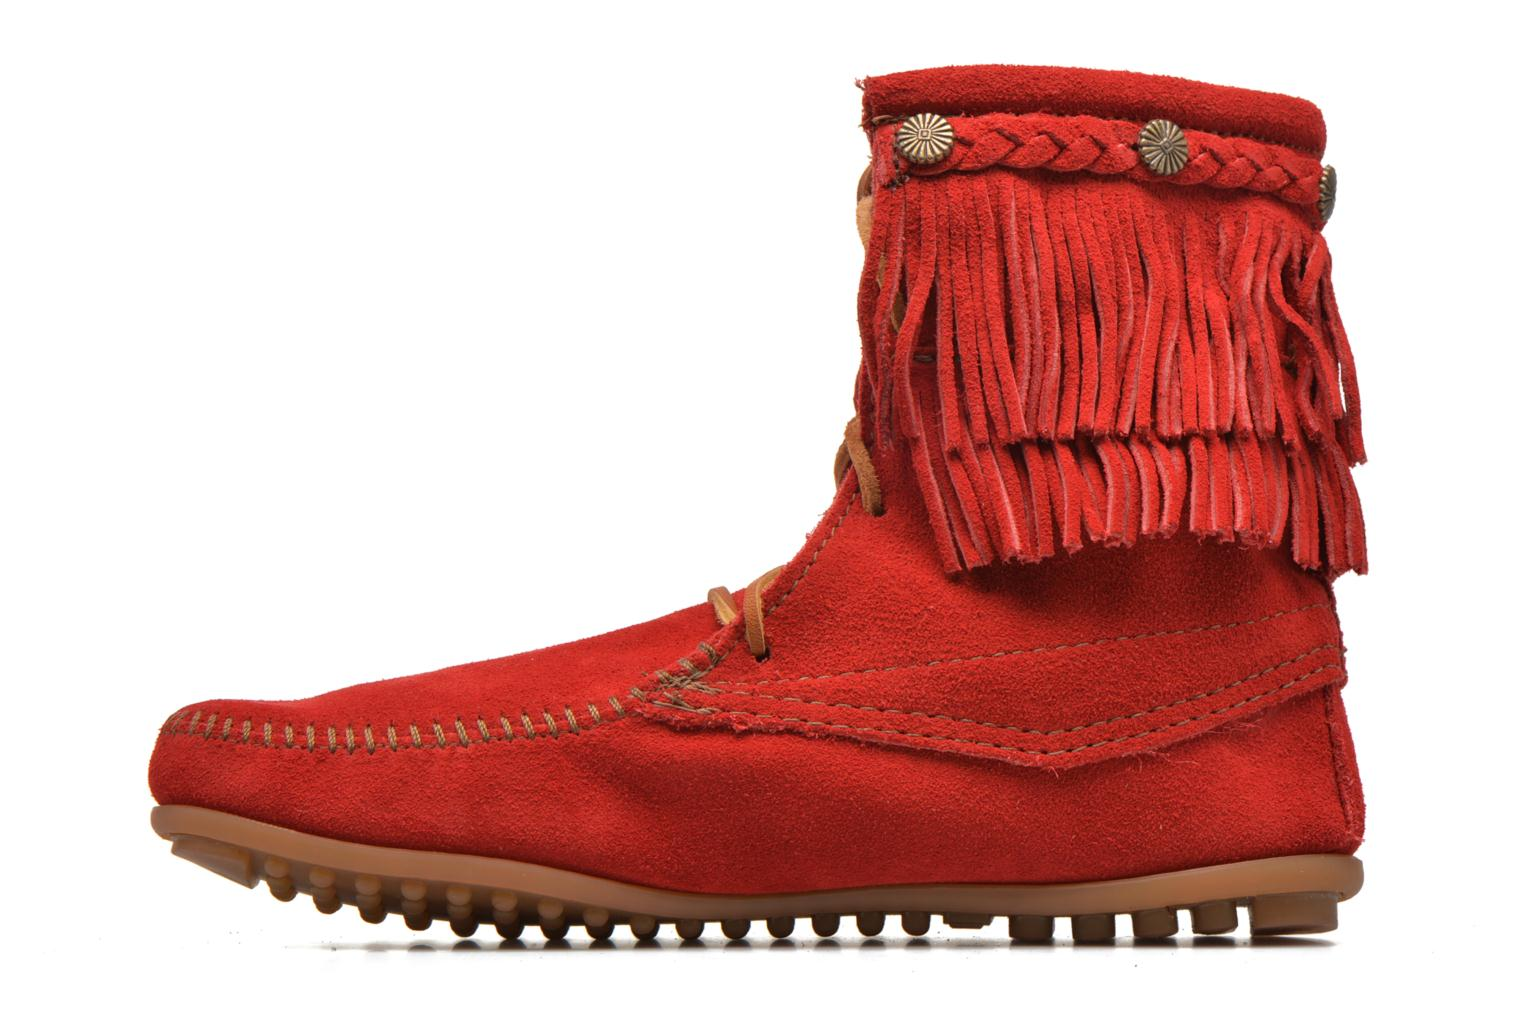 Bottines et boots Minnetonka DOUBLE FRINGE TRAMPER Rouge vue face